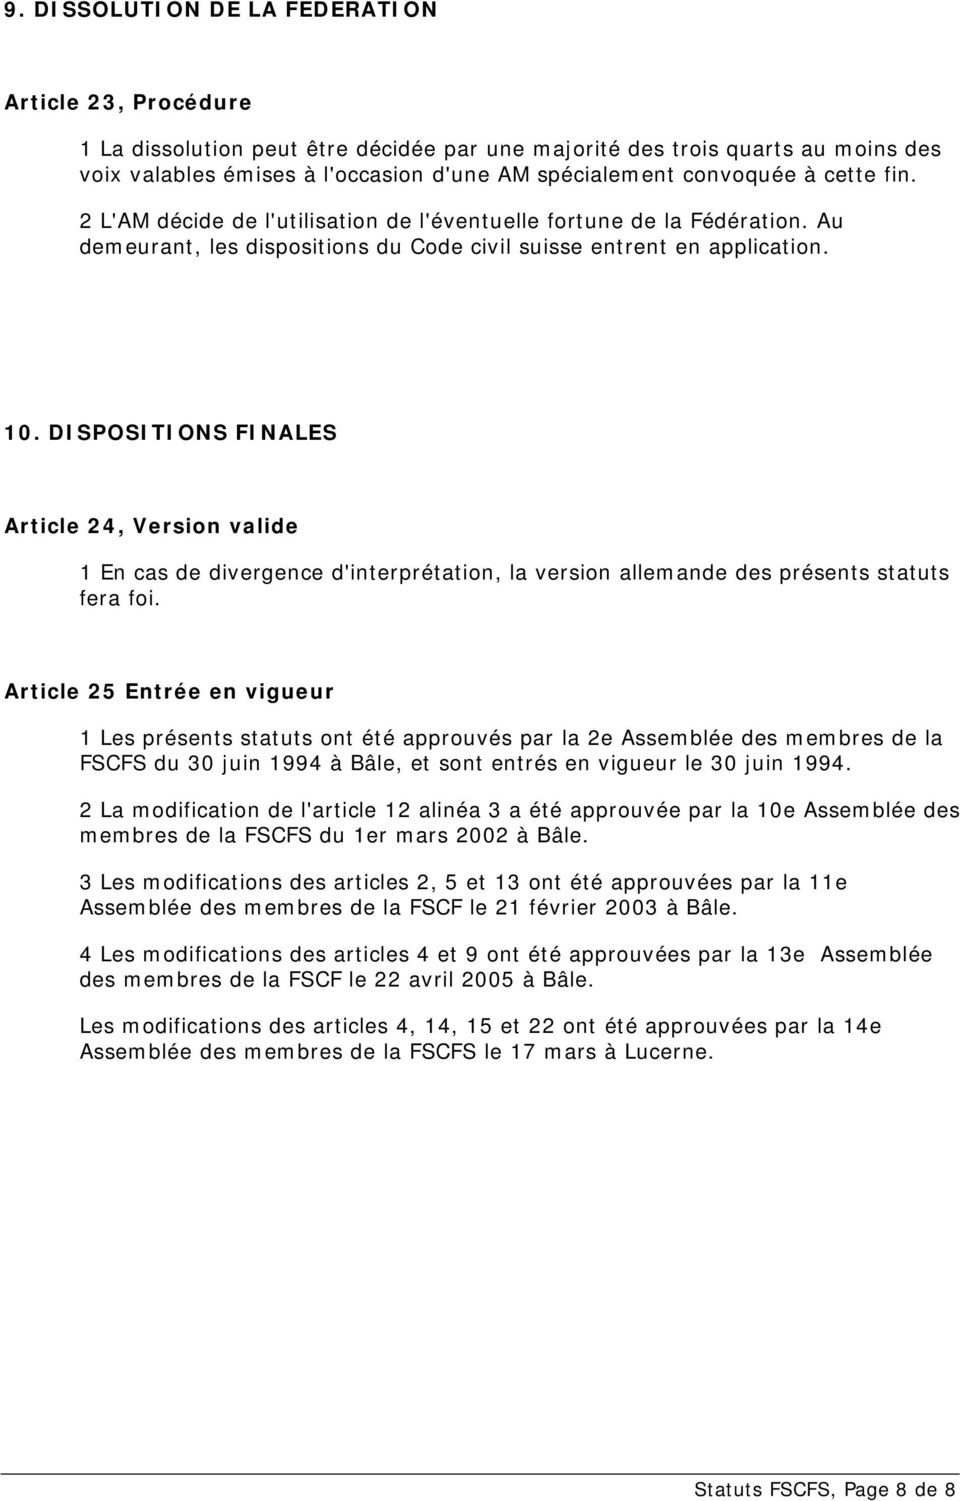 DISPOSITIONS FINALES Article 24, Version valide 1 En cas de divergence d'interprétation, la version allemande des présents statuts fera foi.